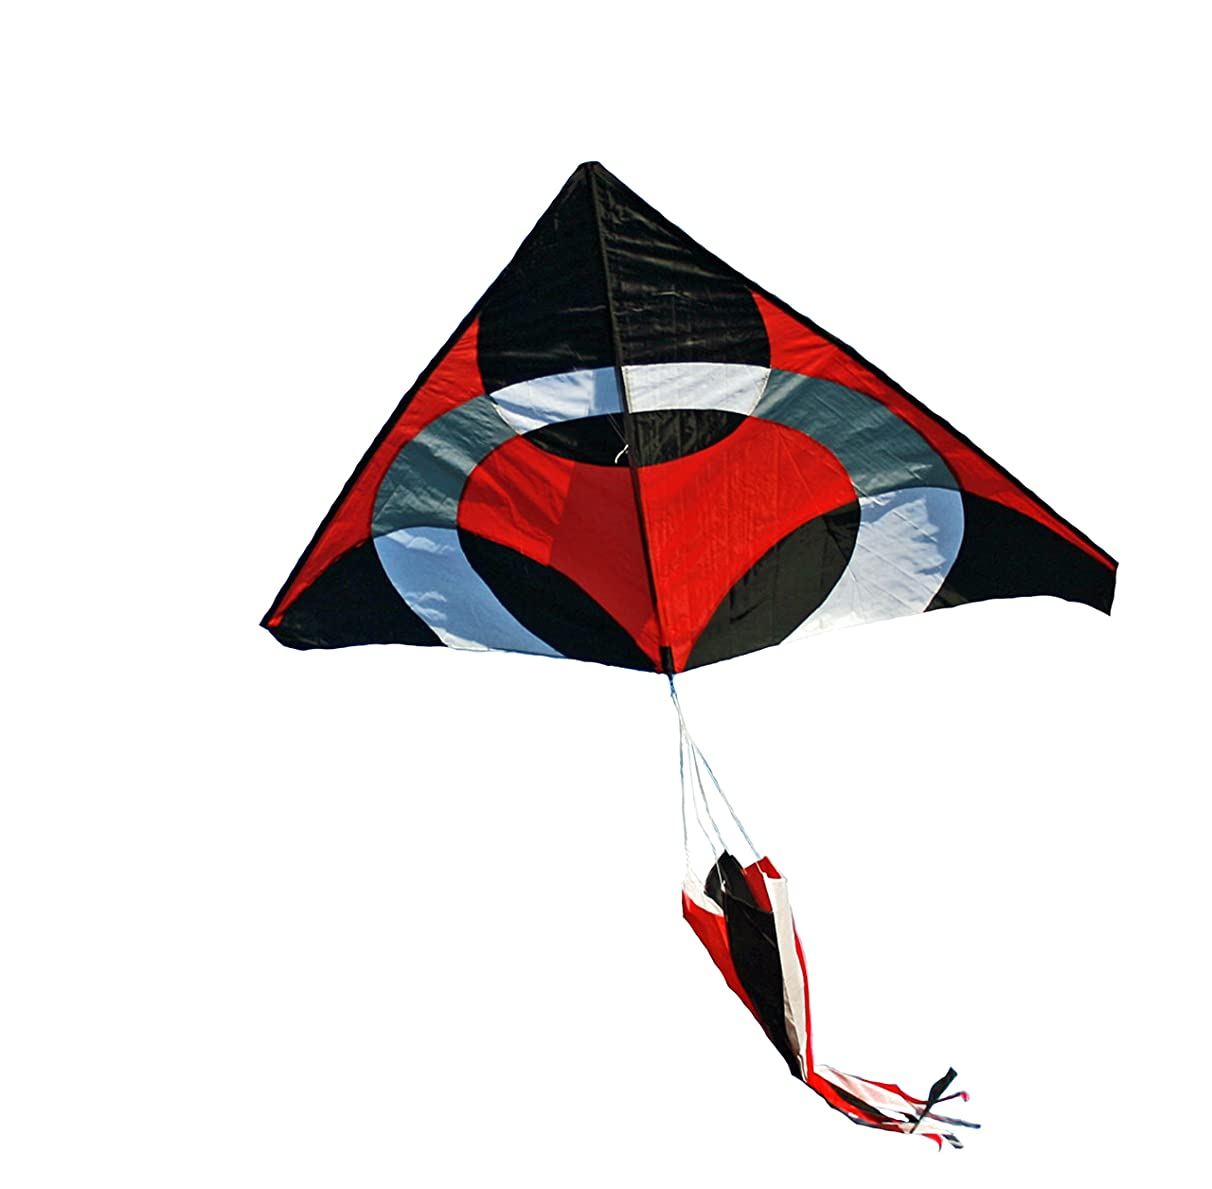 Weifang New Sky Kites Giant Delta Ring iKite Delta Shape Premium Large Kite with Line and Handle